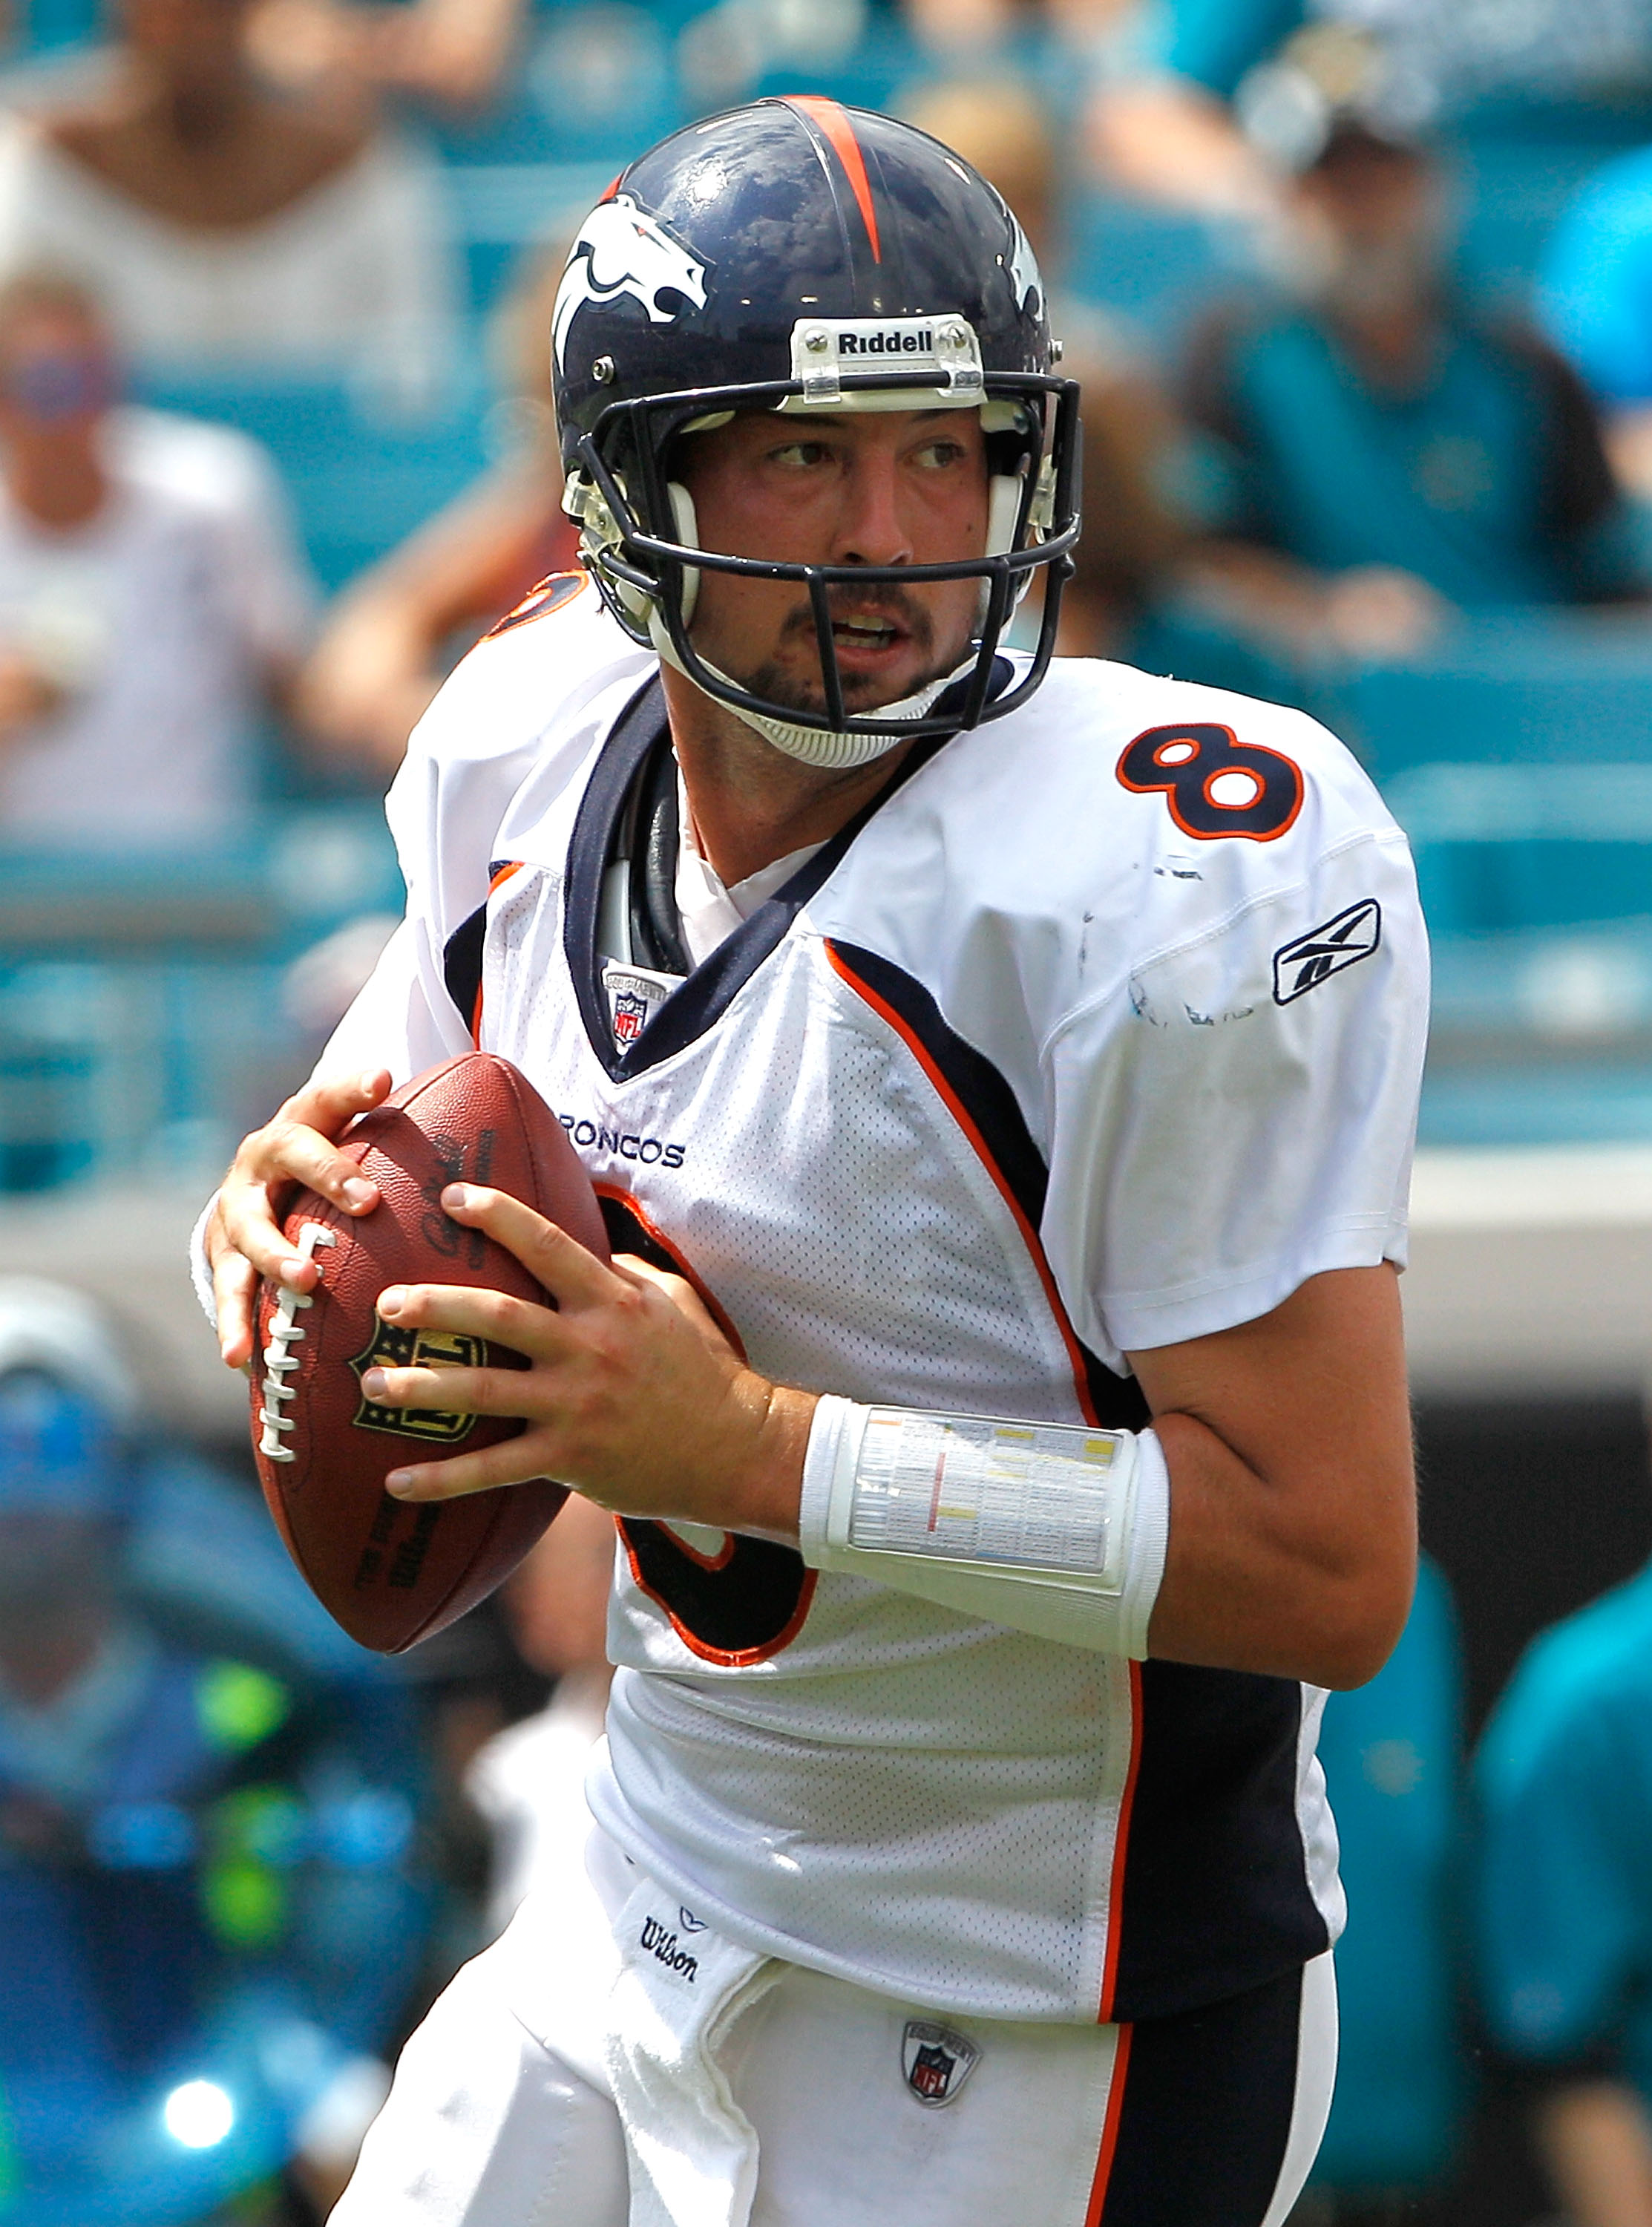 JACKSONVILLE, FL - SEPTEMBER 12:  Quarterback Kyle Orton #8 of the Denver Broncos attempts a pass during the NFL season opener game against the Jacksonville Jaguars at EverBank Field on September 12, 2010 in Jacksonville, Florida.  (Photo by Sam Greenwood